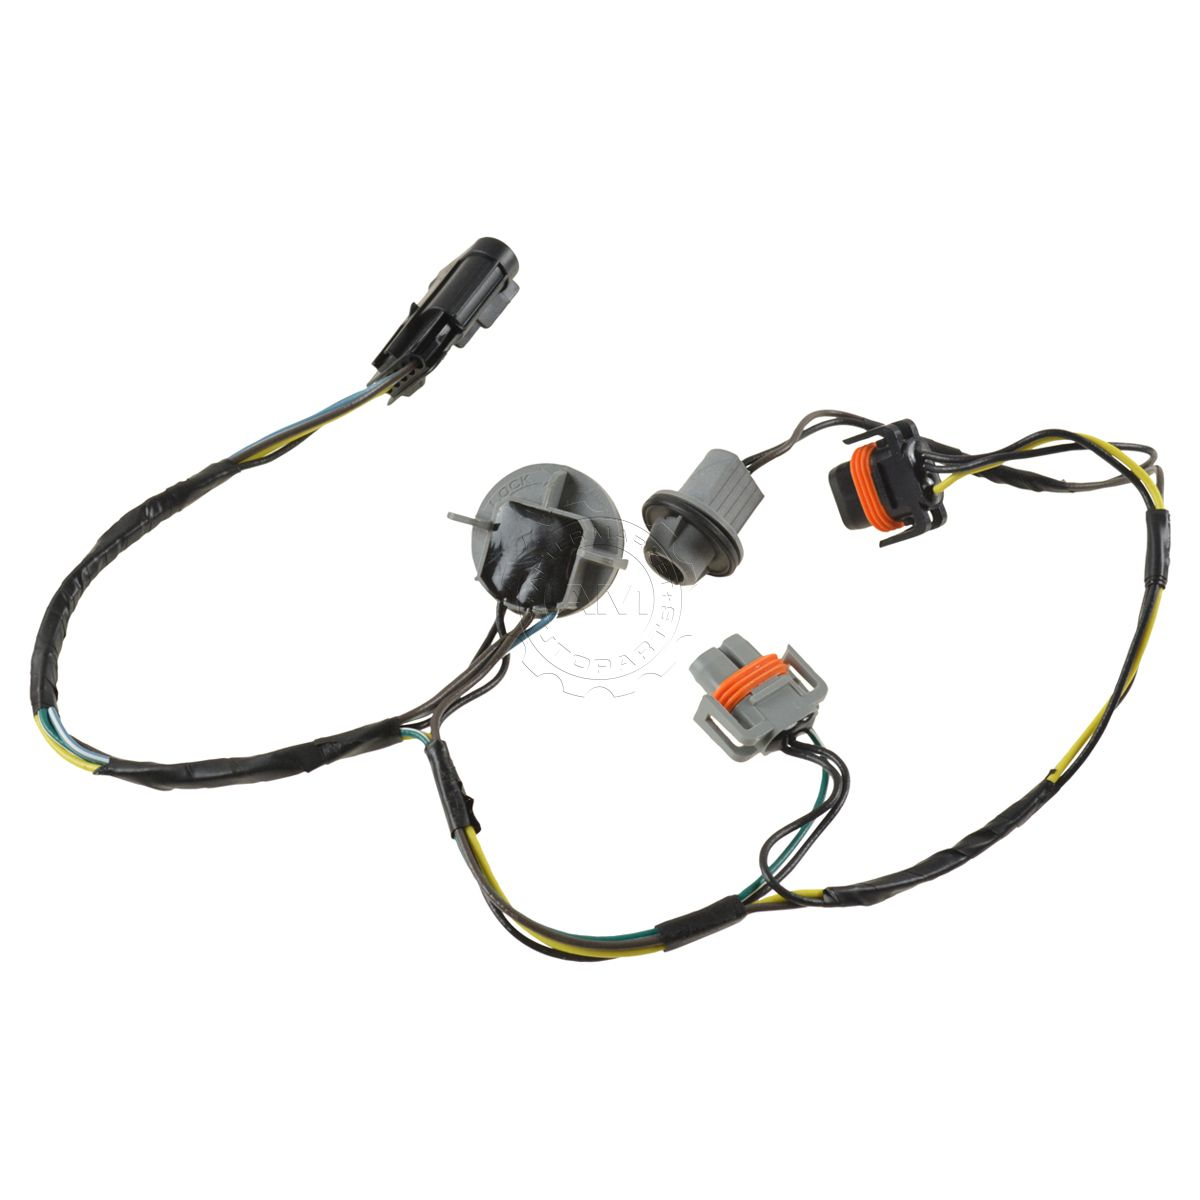 hight resolution of oem 15930264 headlight wiring harness lh or rh side for 08 12 chevy malibu new